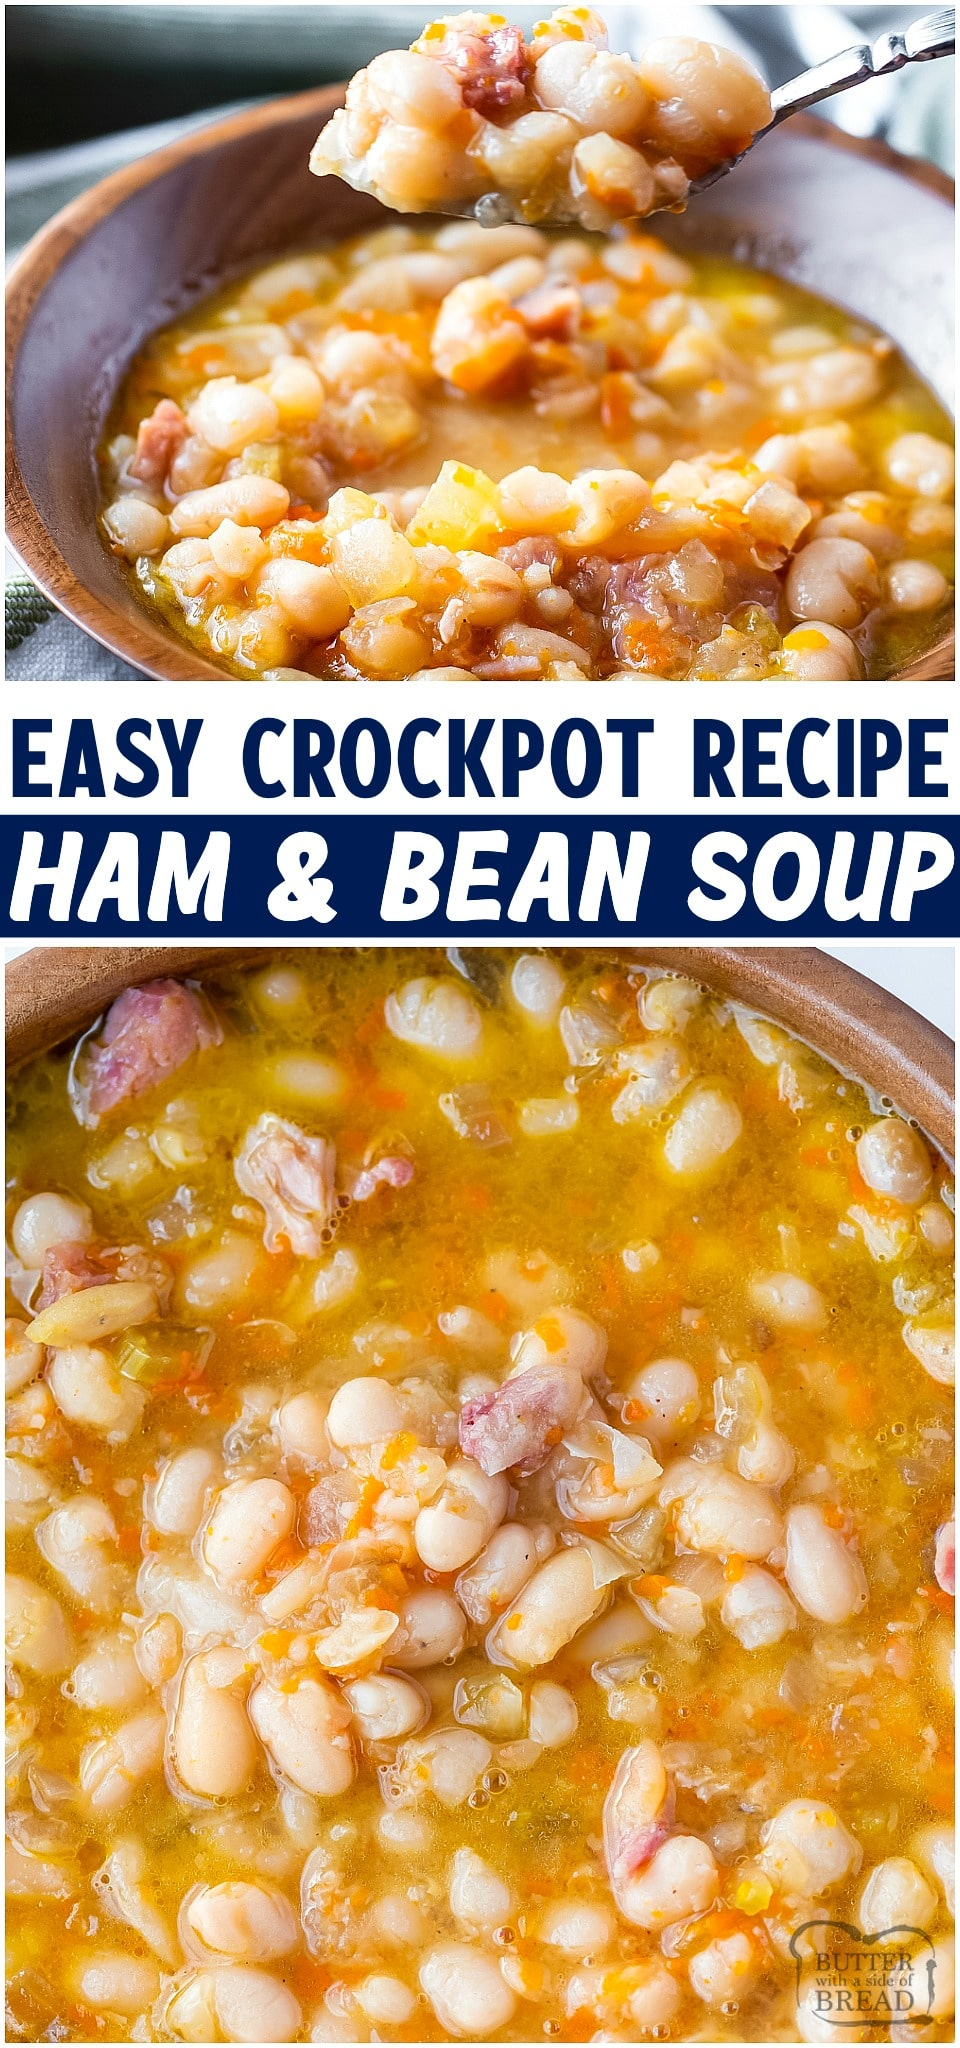 Crockpot ham and bean soup made easy with a ham bone, dried beans & vegetables. Simple & flavorful slow cooker recipe that uses leftover ham and pantry ingredients. #ham #hambeansoup #hamhock #slowcooker #crockpot #souprecipe from BUTTER WITH A SIDE OF BREAD